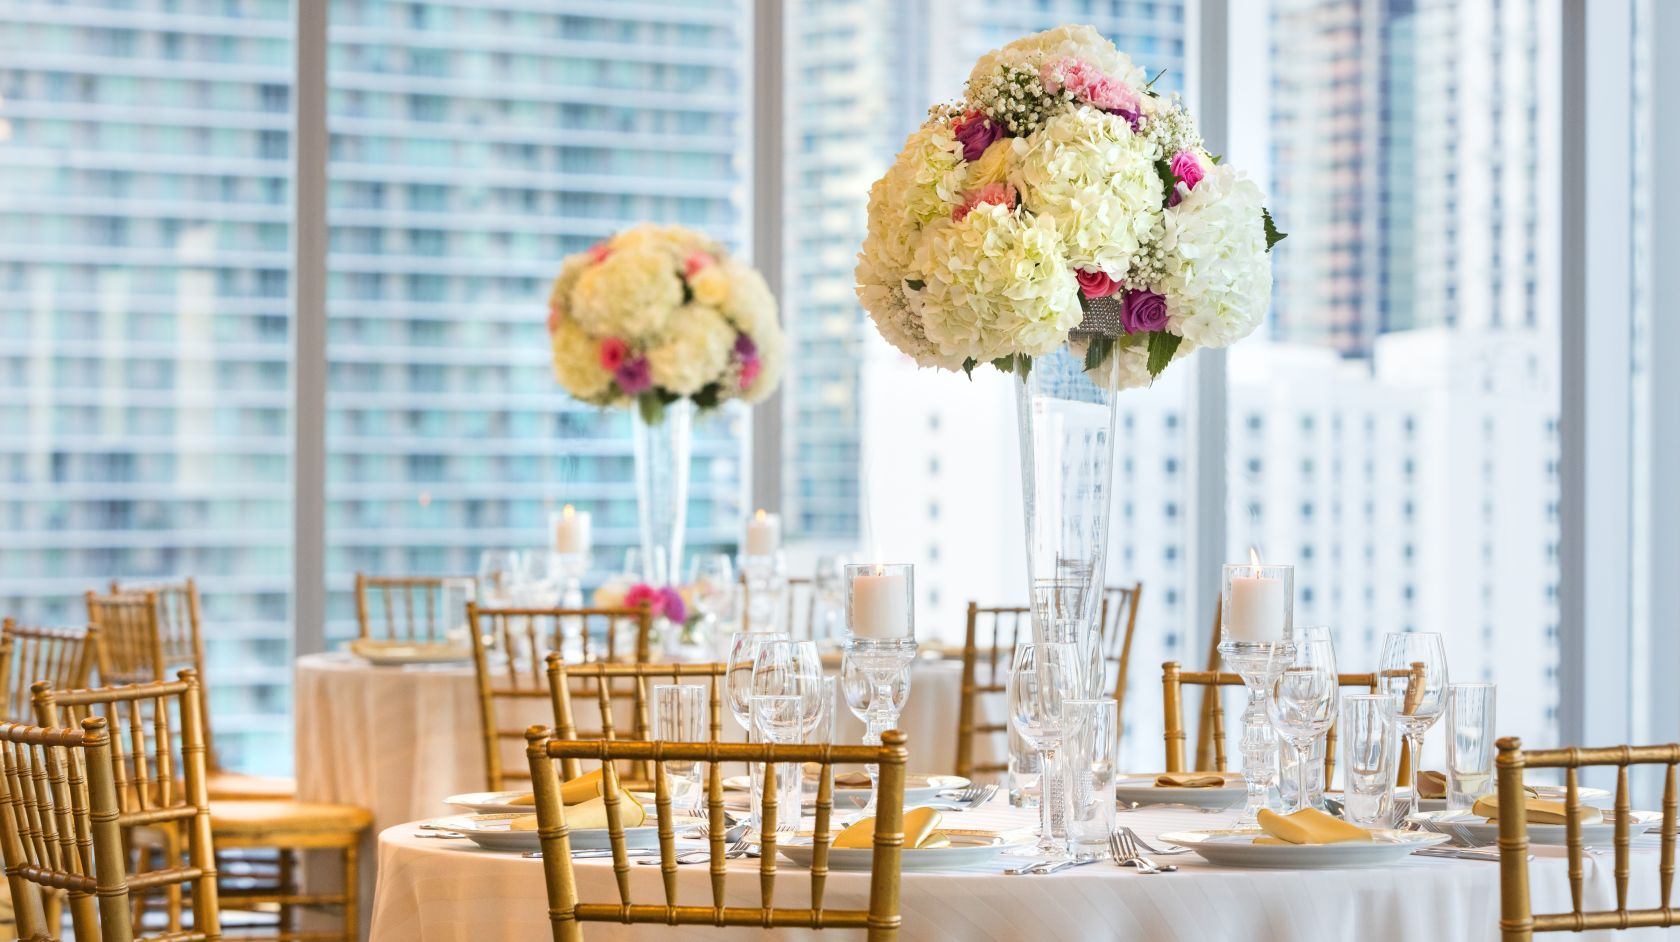 wedding banquet at Novotel Miami Brickell hotel